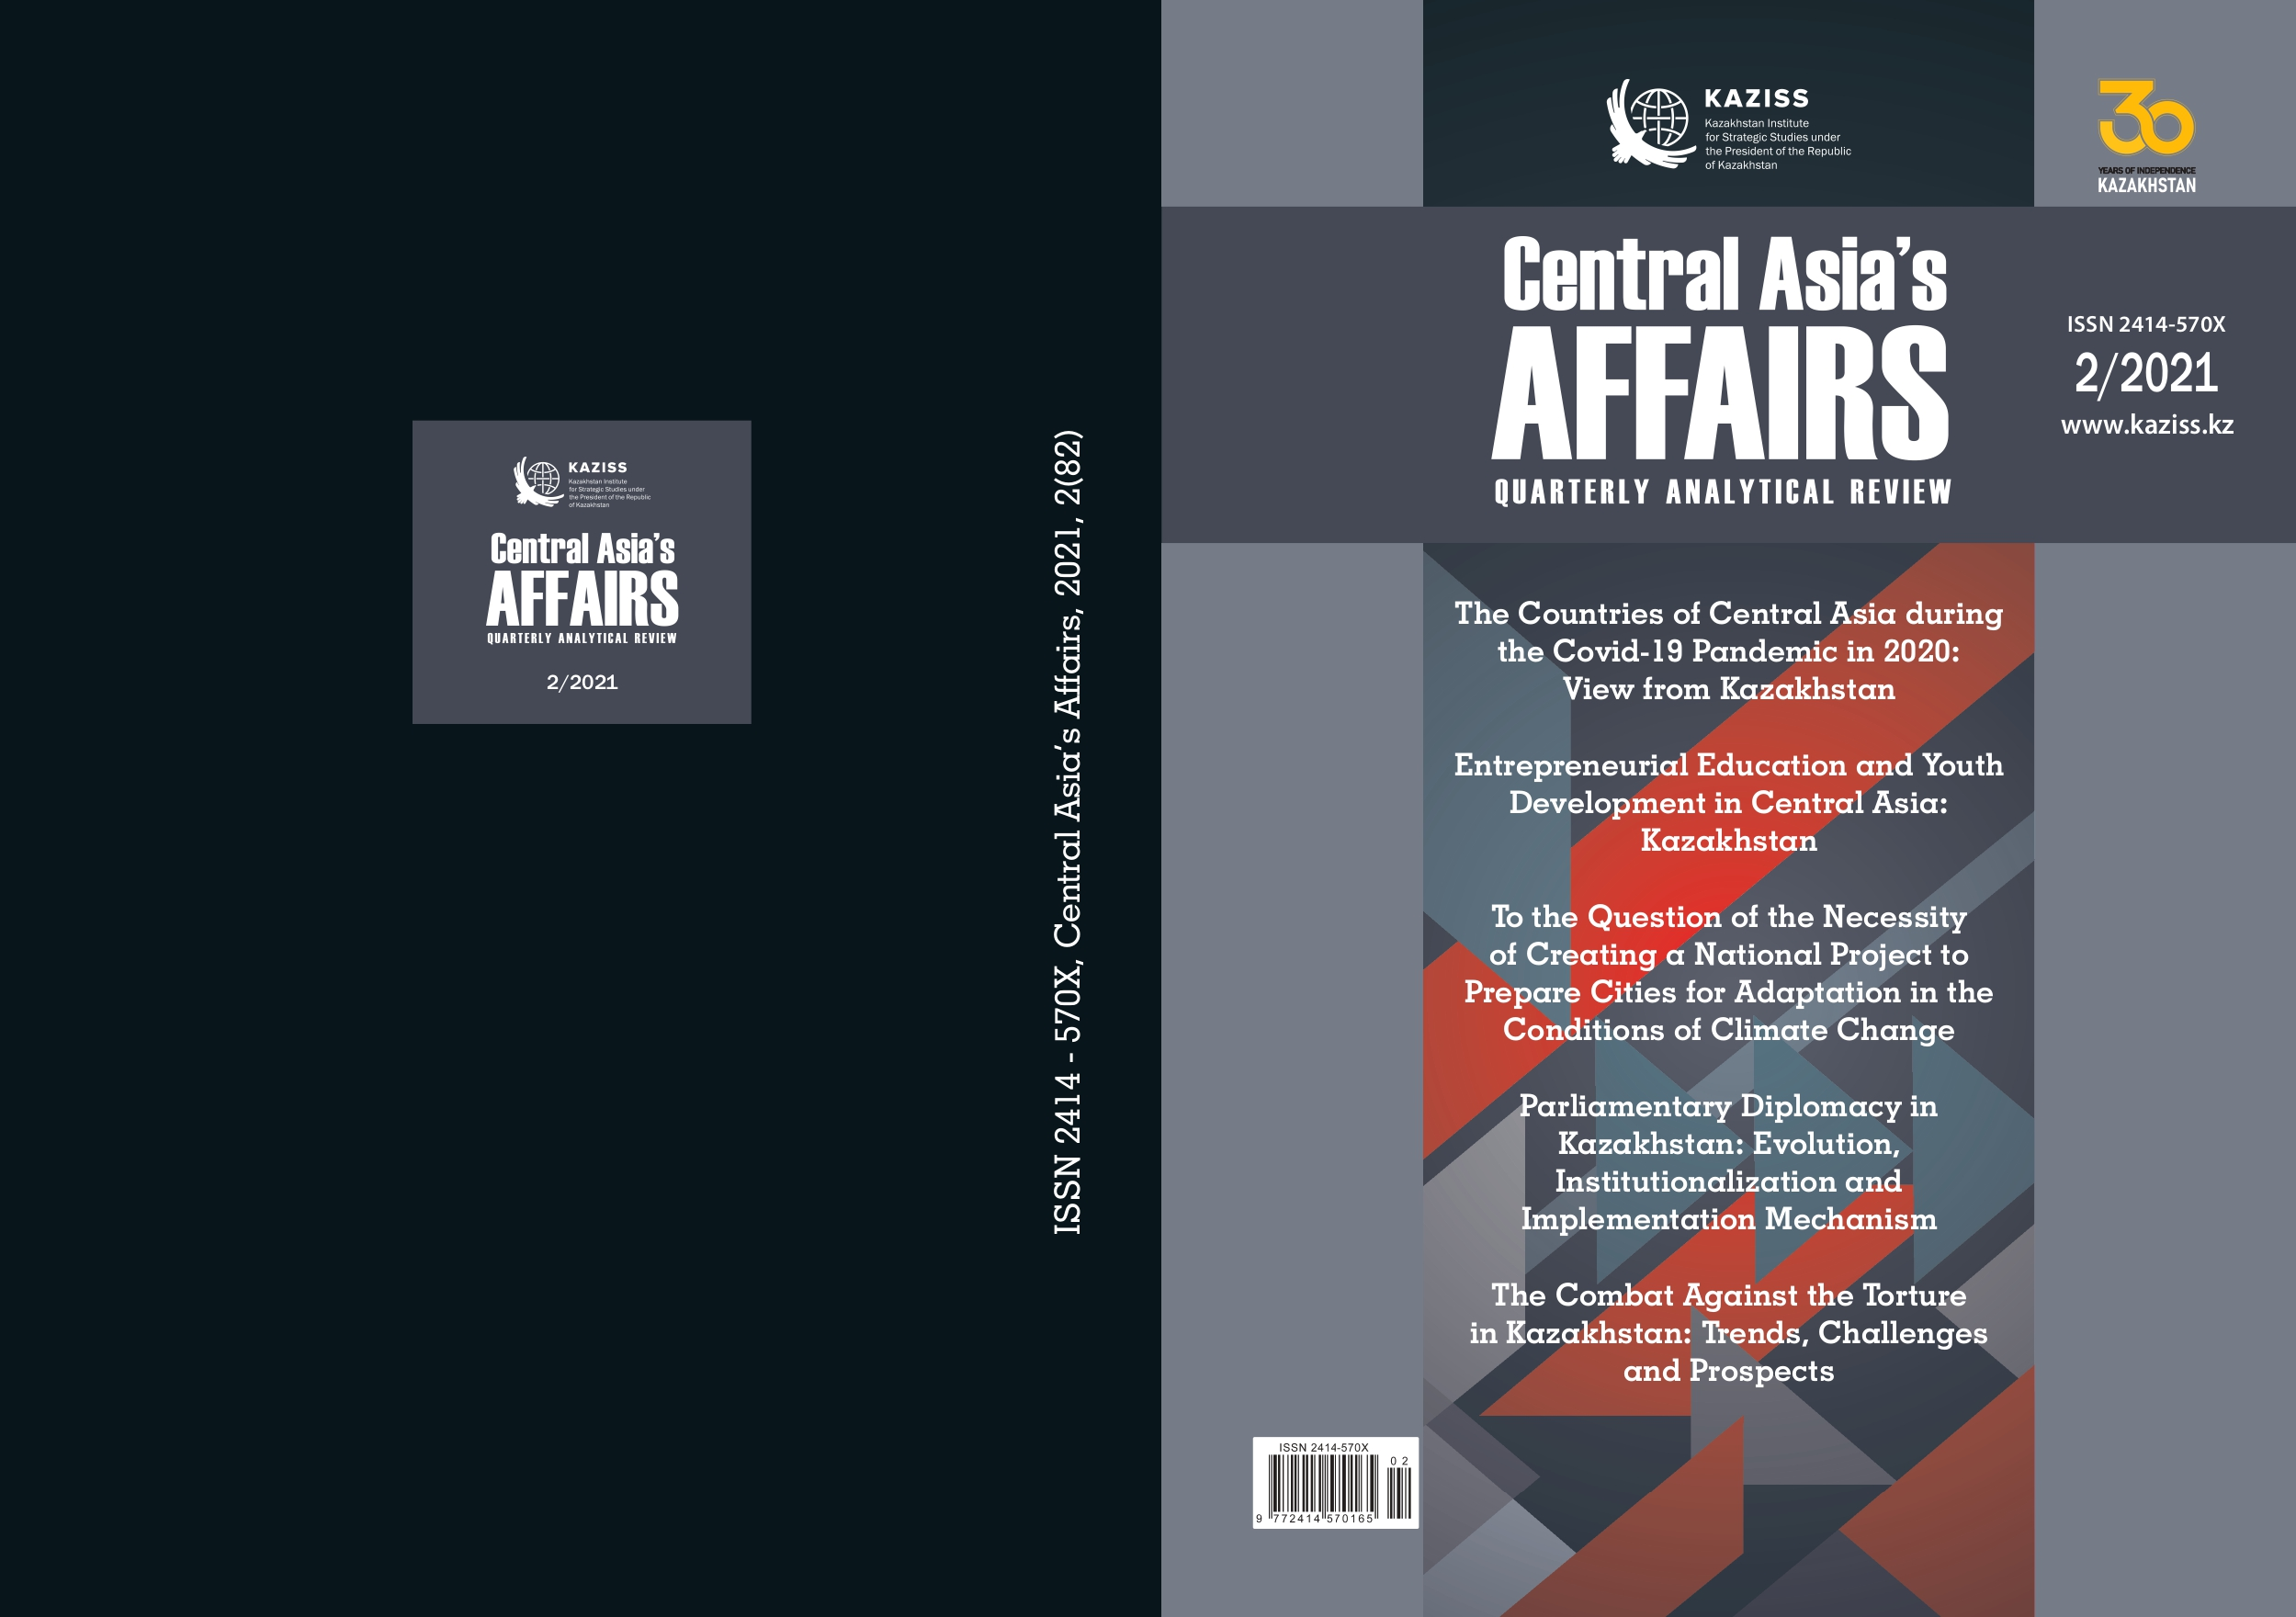 Central Asia's Affairs 2/2021